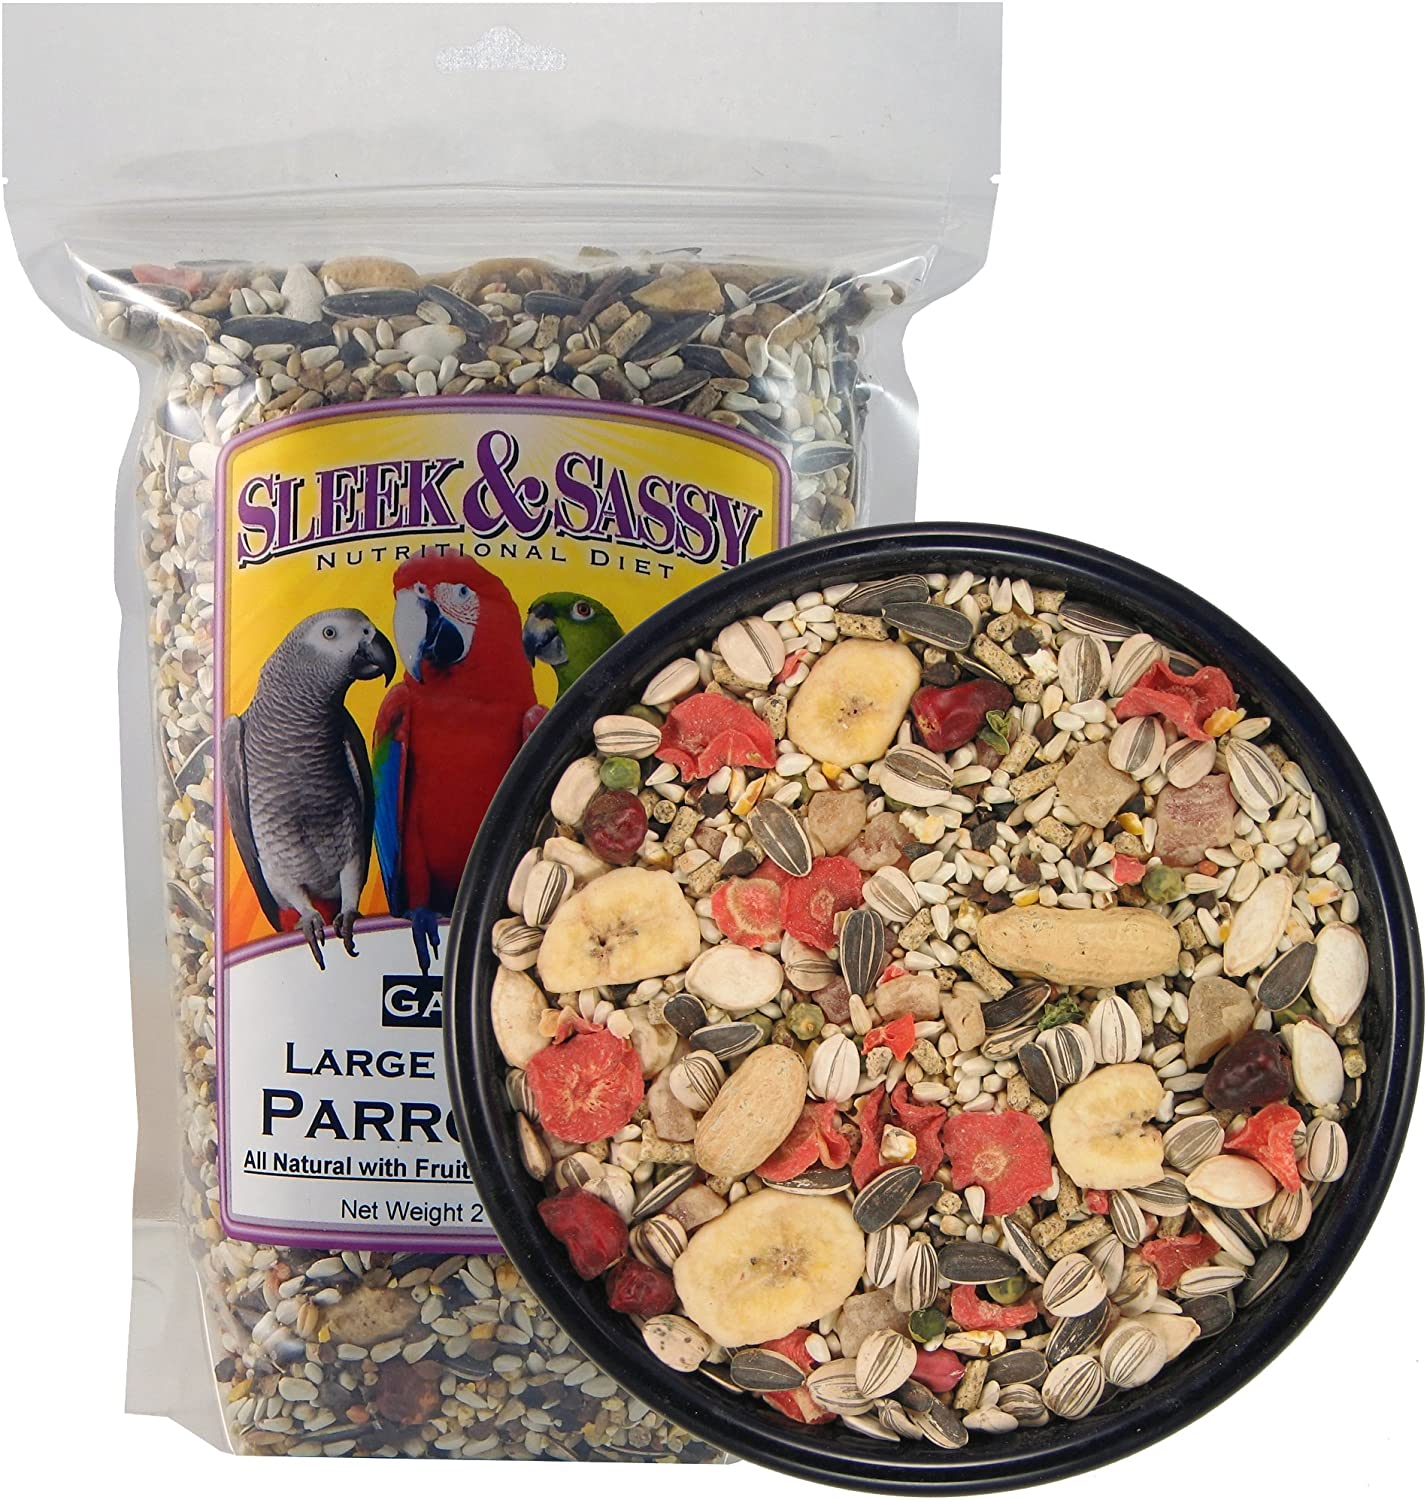 SLEEK & SASSY NUTRITIONAL DIET Garden Large Hookbill Parrot Food for Large Conures, Amazons, African Greys, Cockatoos, Pionus-Parrots & Small Macaws (2 lbs.)